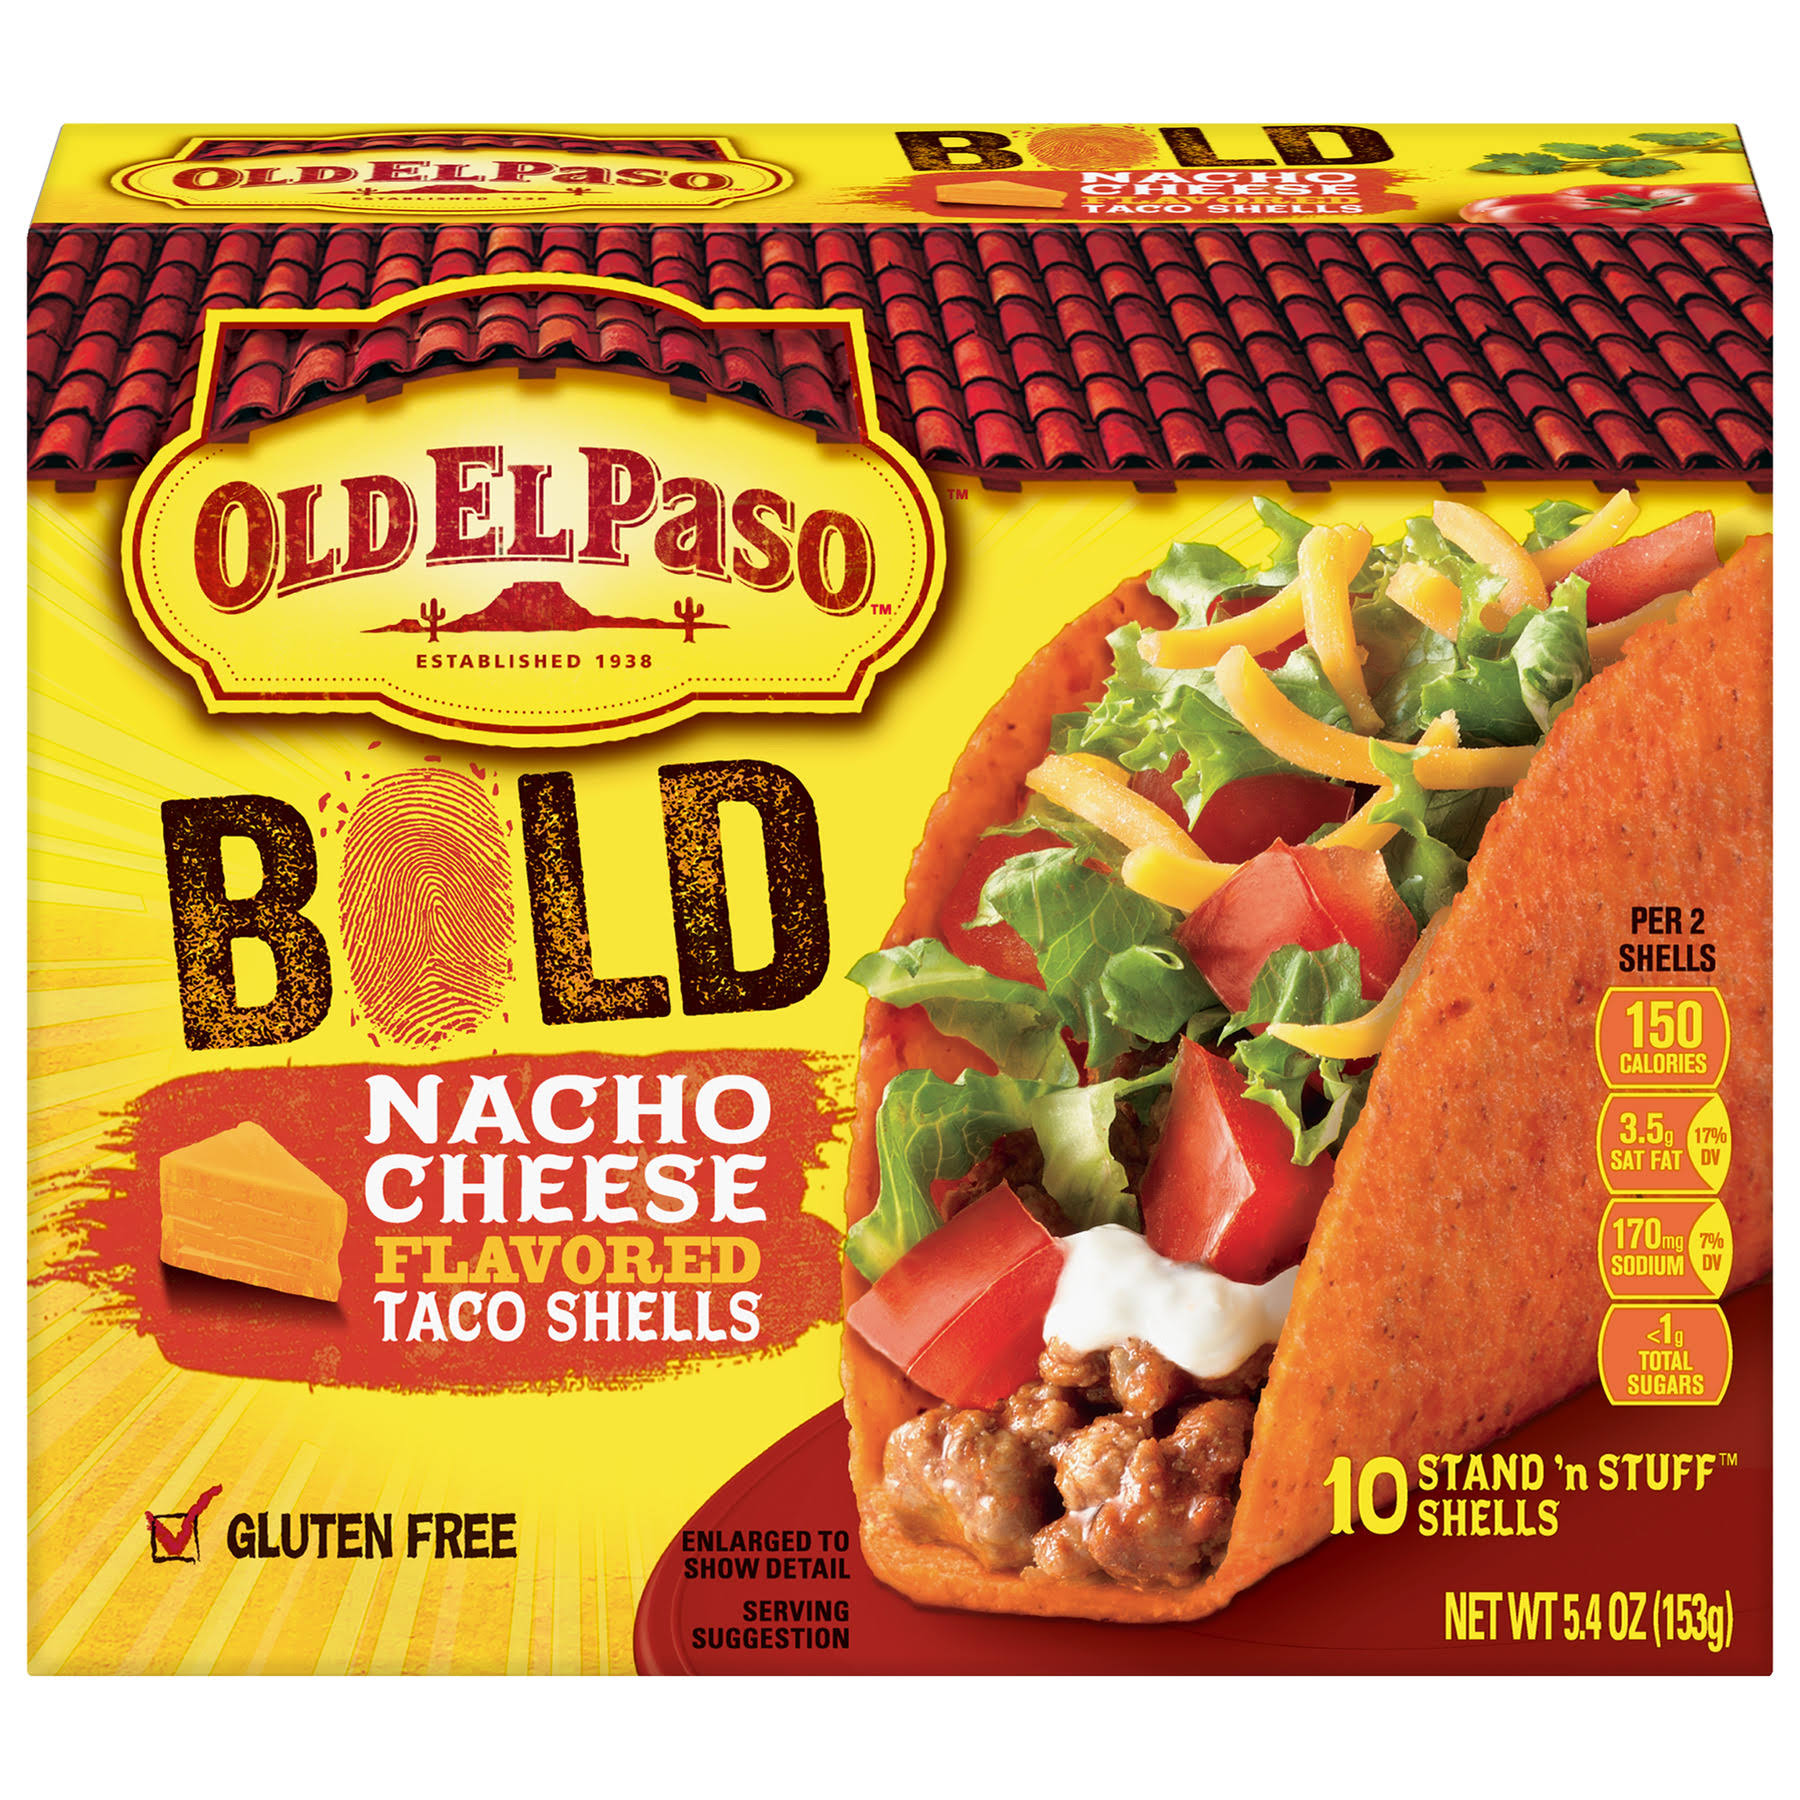 Old El Paso Bold Stand N Stuff Taco Shells - Nacho Cheese Flavor, 5.4oz, 10ct